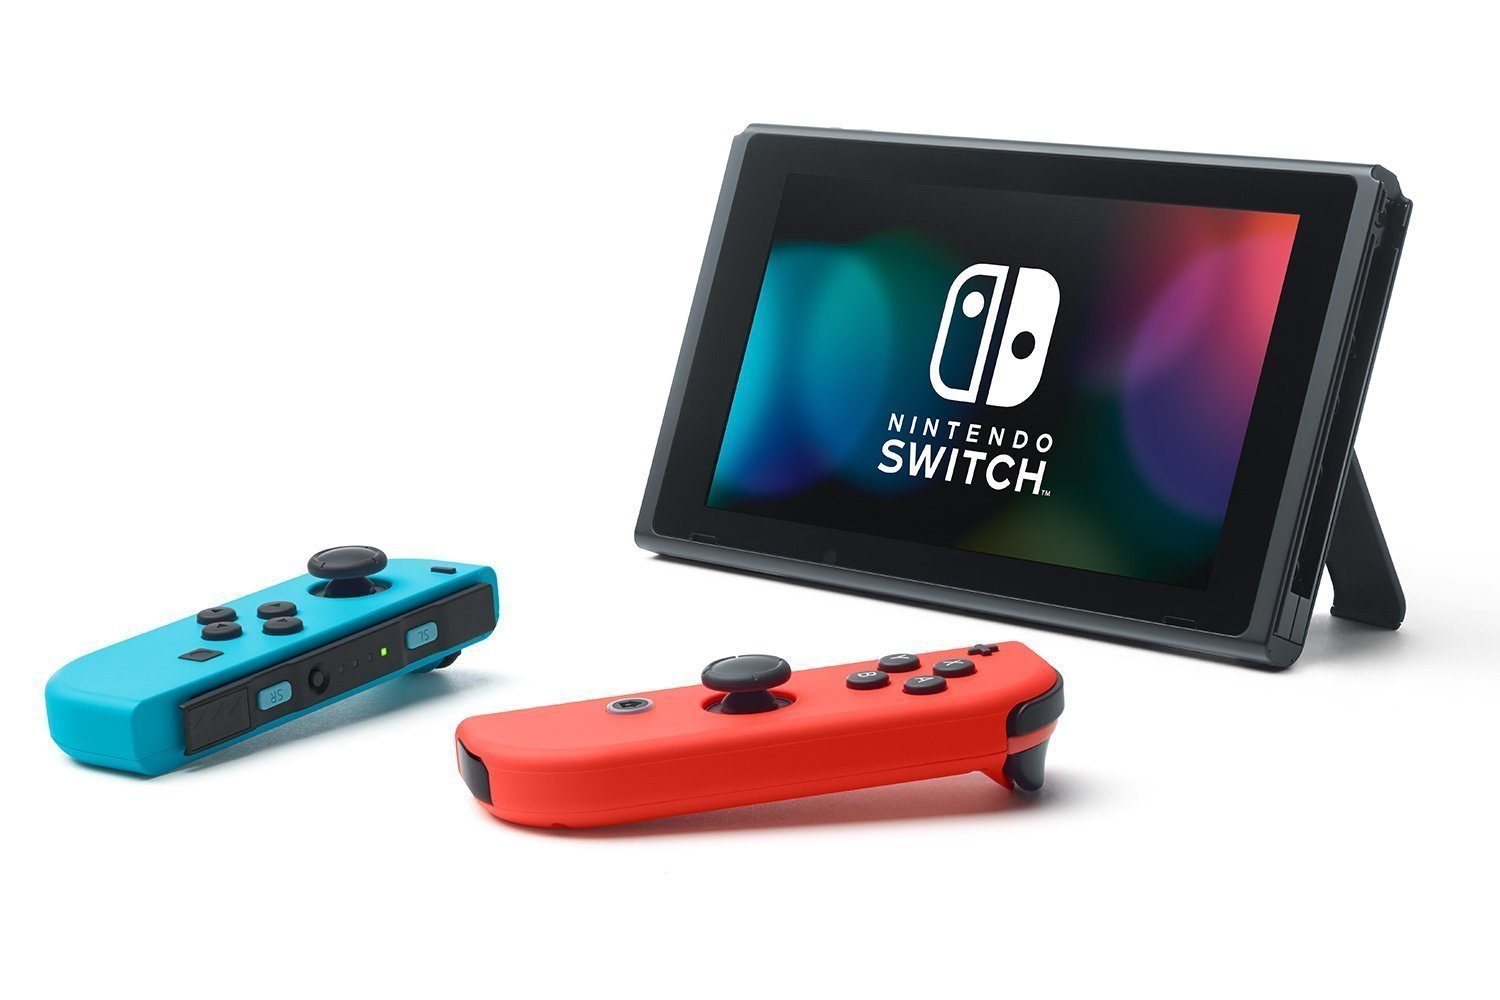 Werbung: Nintendo Switch / Bild: Amazon.de